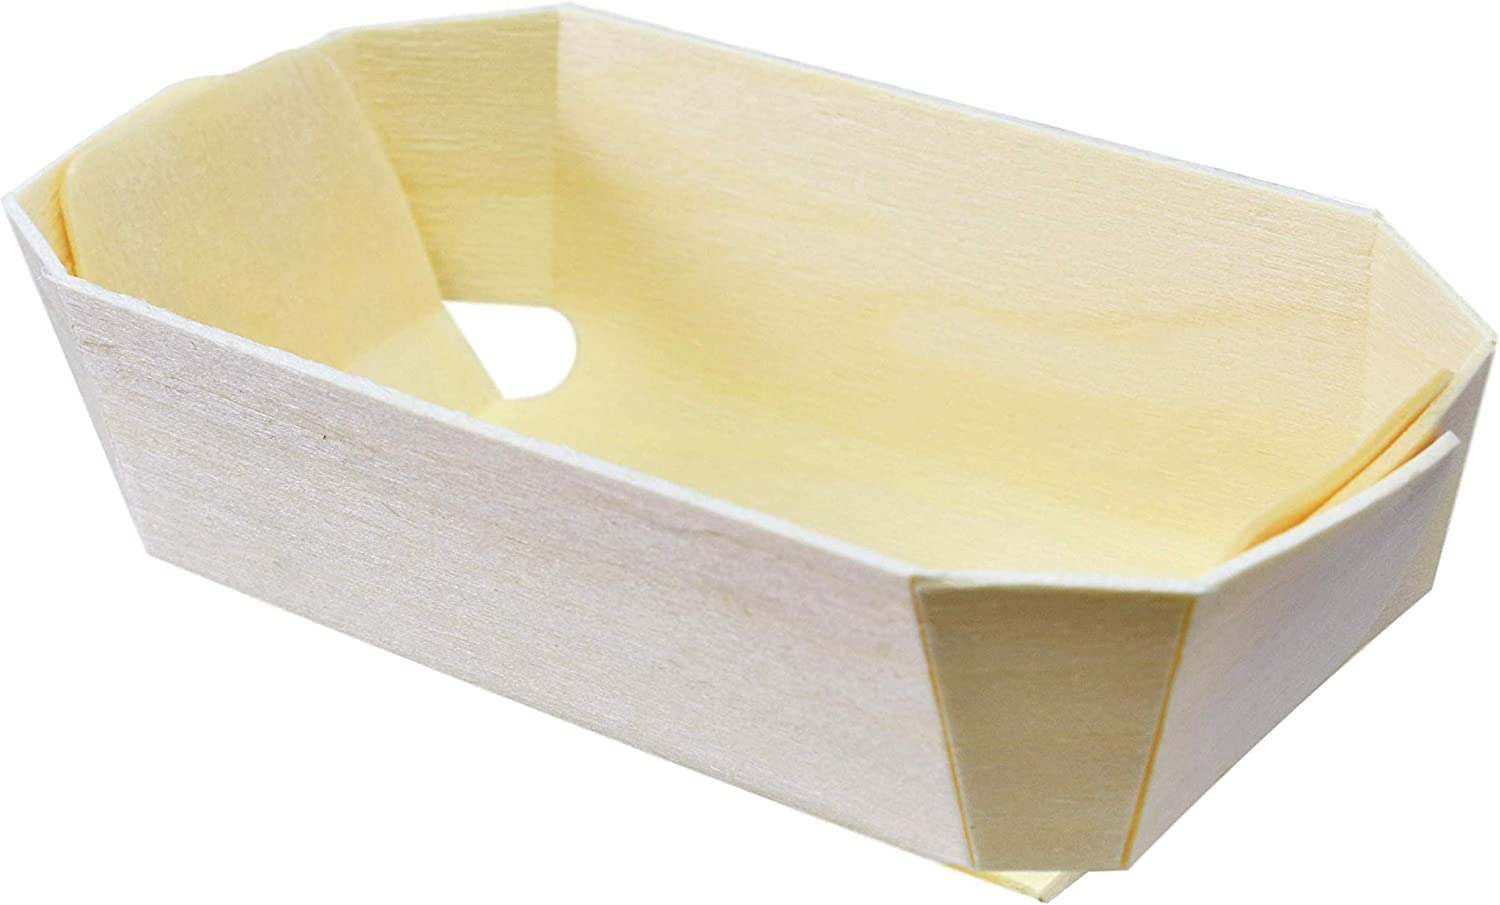 36 Count Panibois Tom Pouce 3.5 Ounce Wooden Baking Mold with Paper Liner